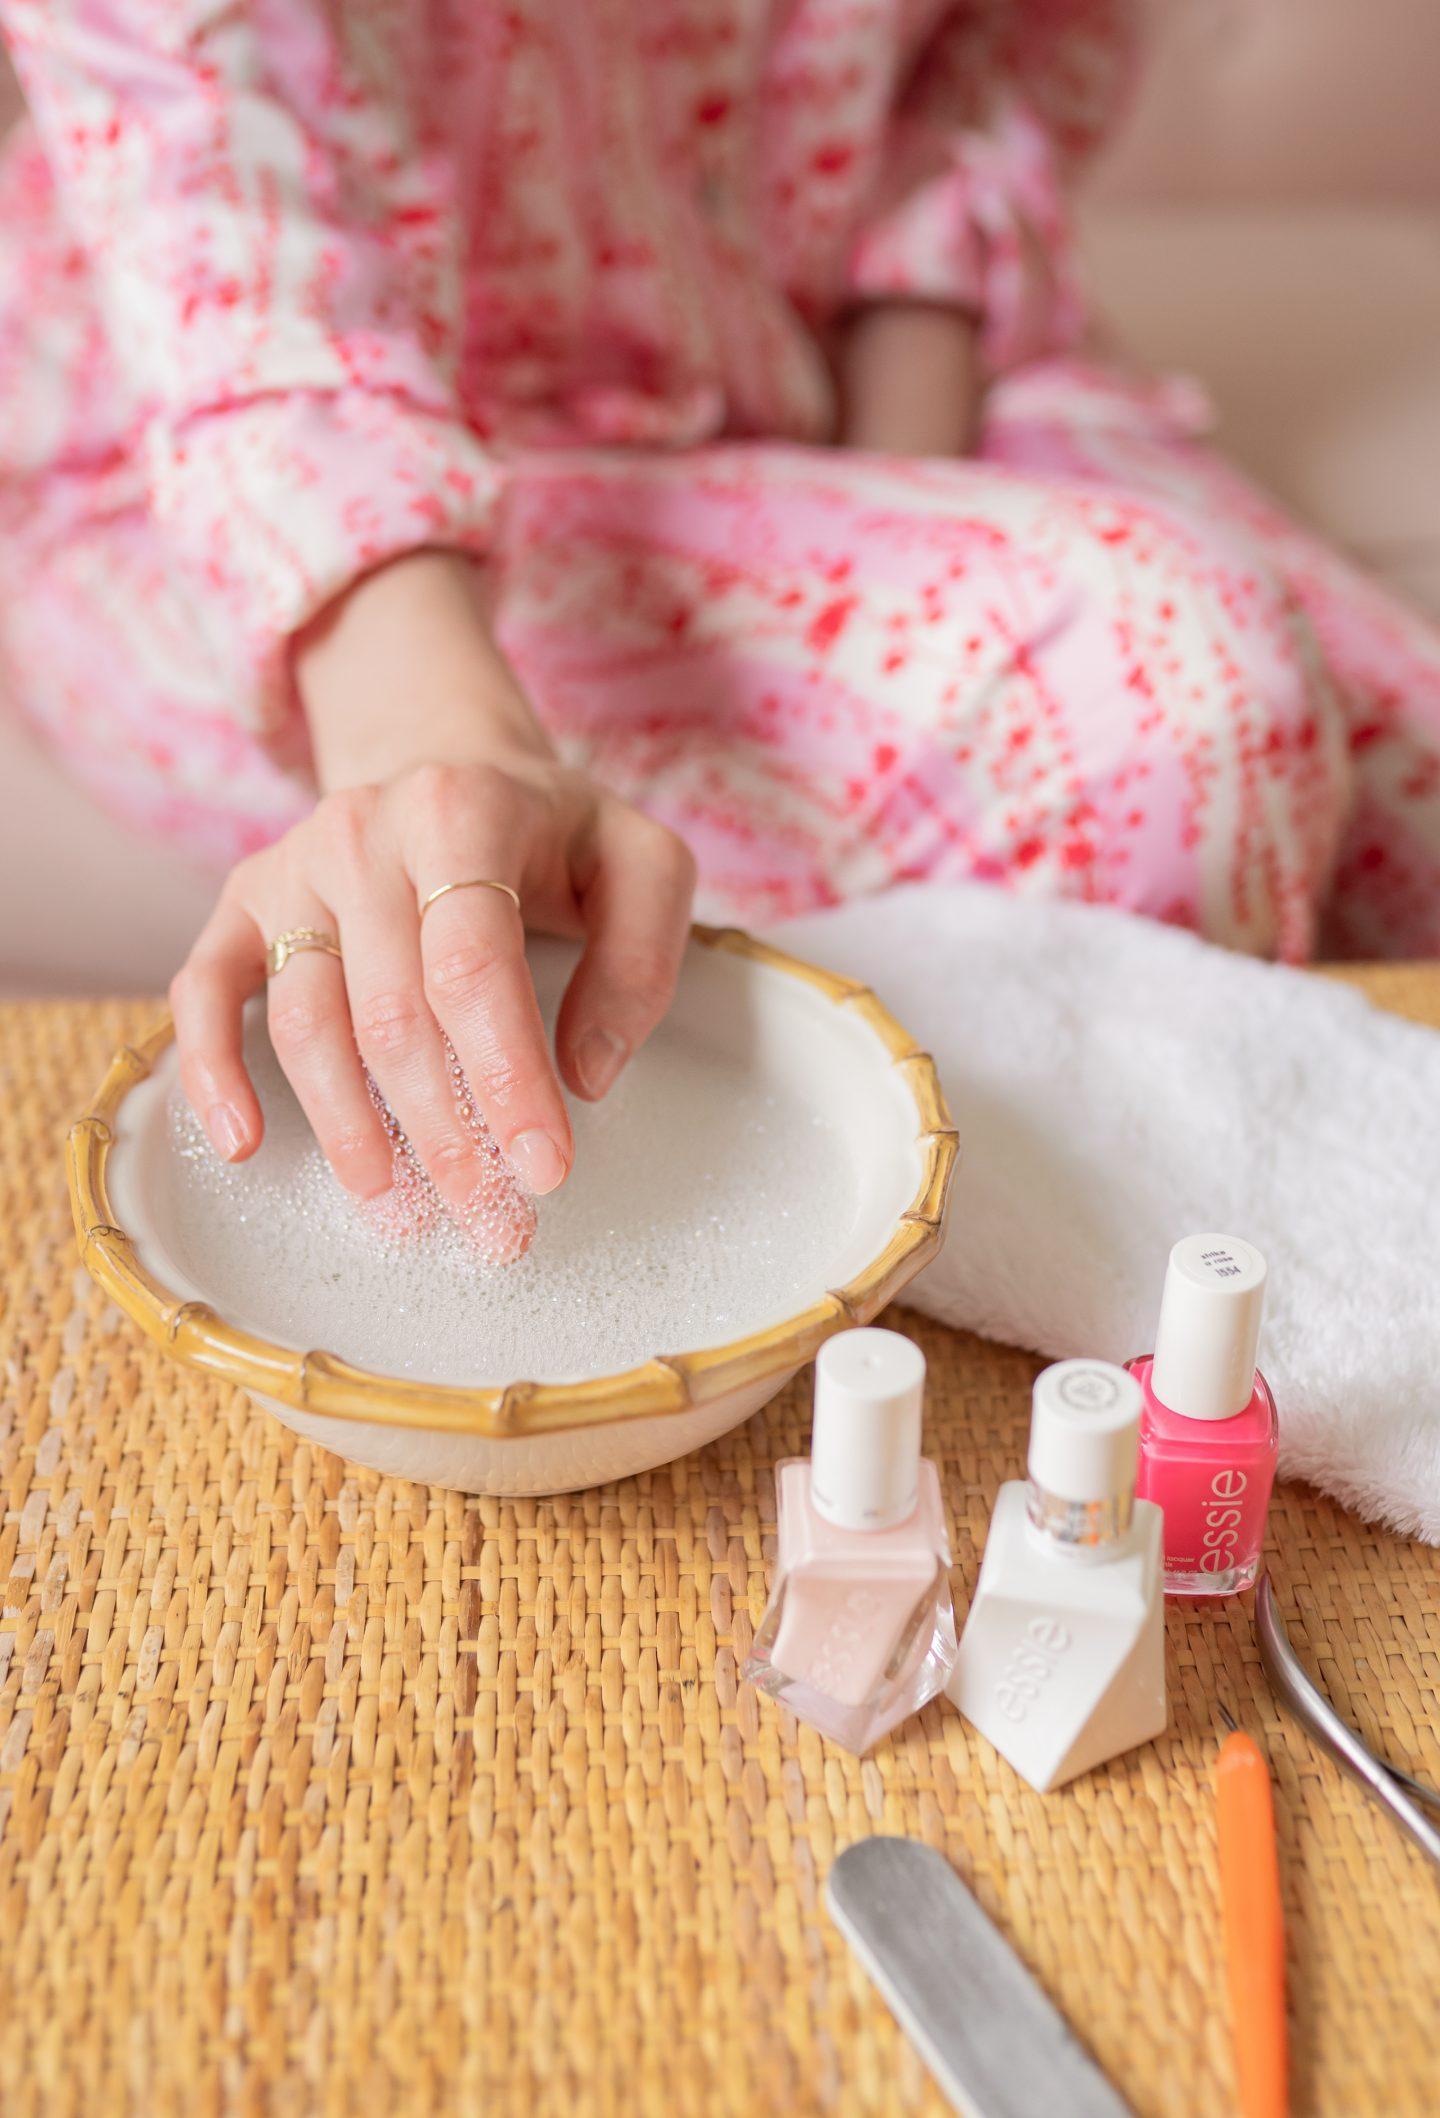 Ashley Brooke soaking nails and cuticles for DIY manicure